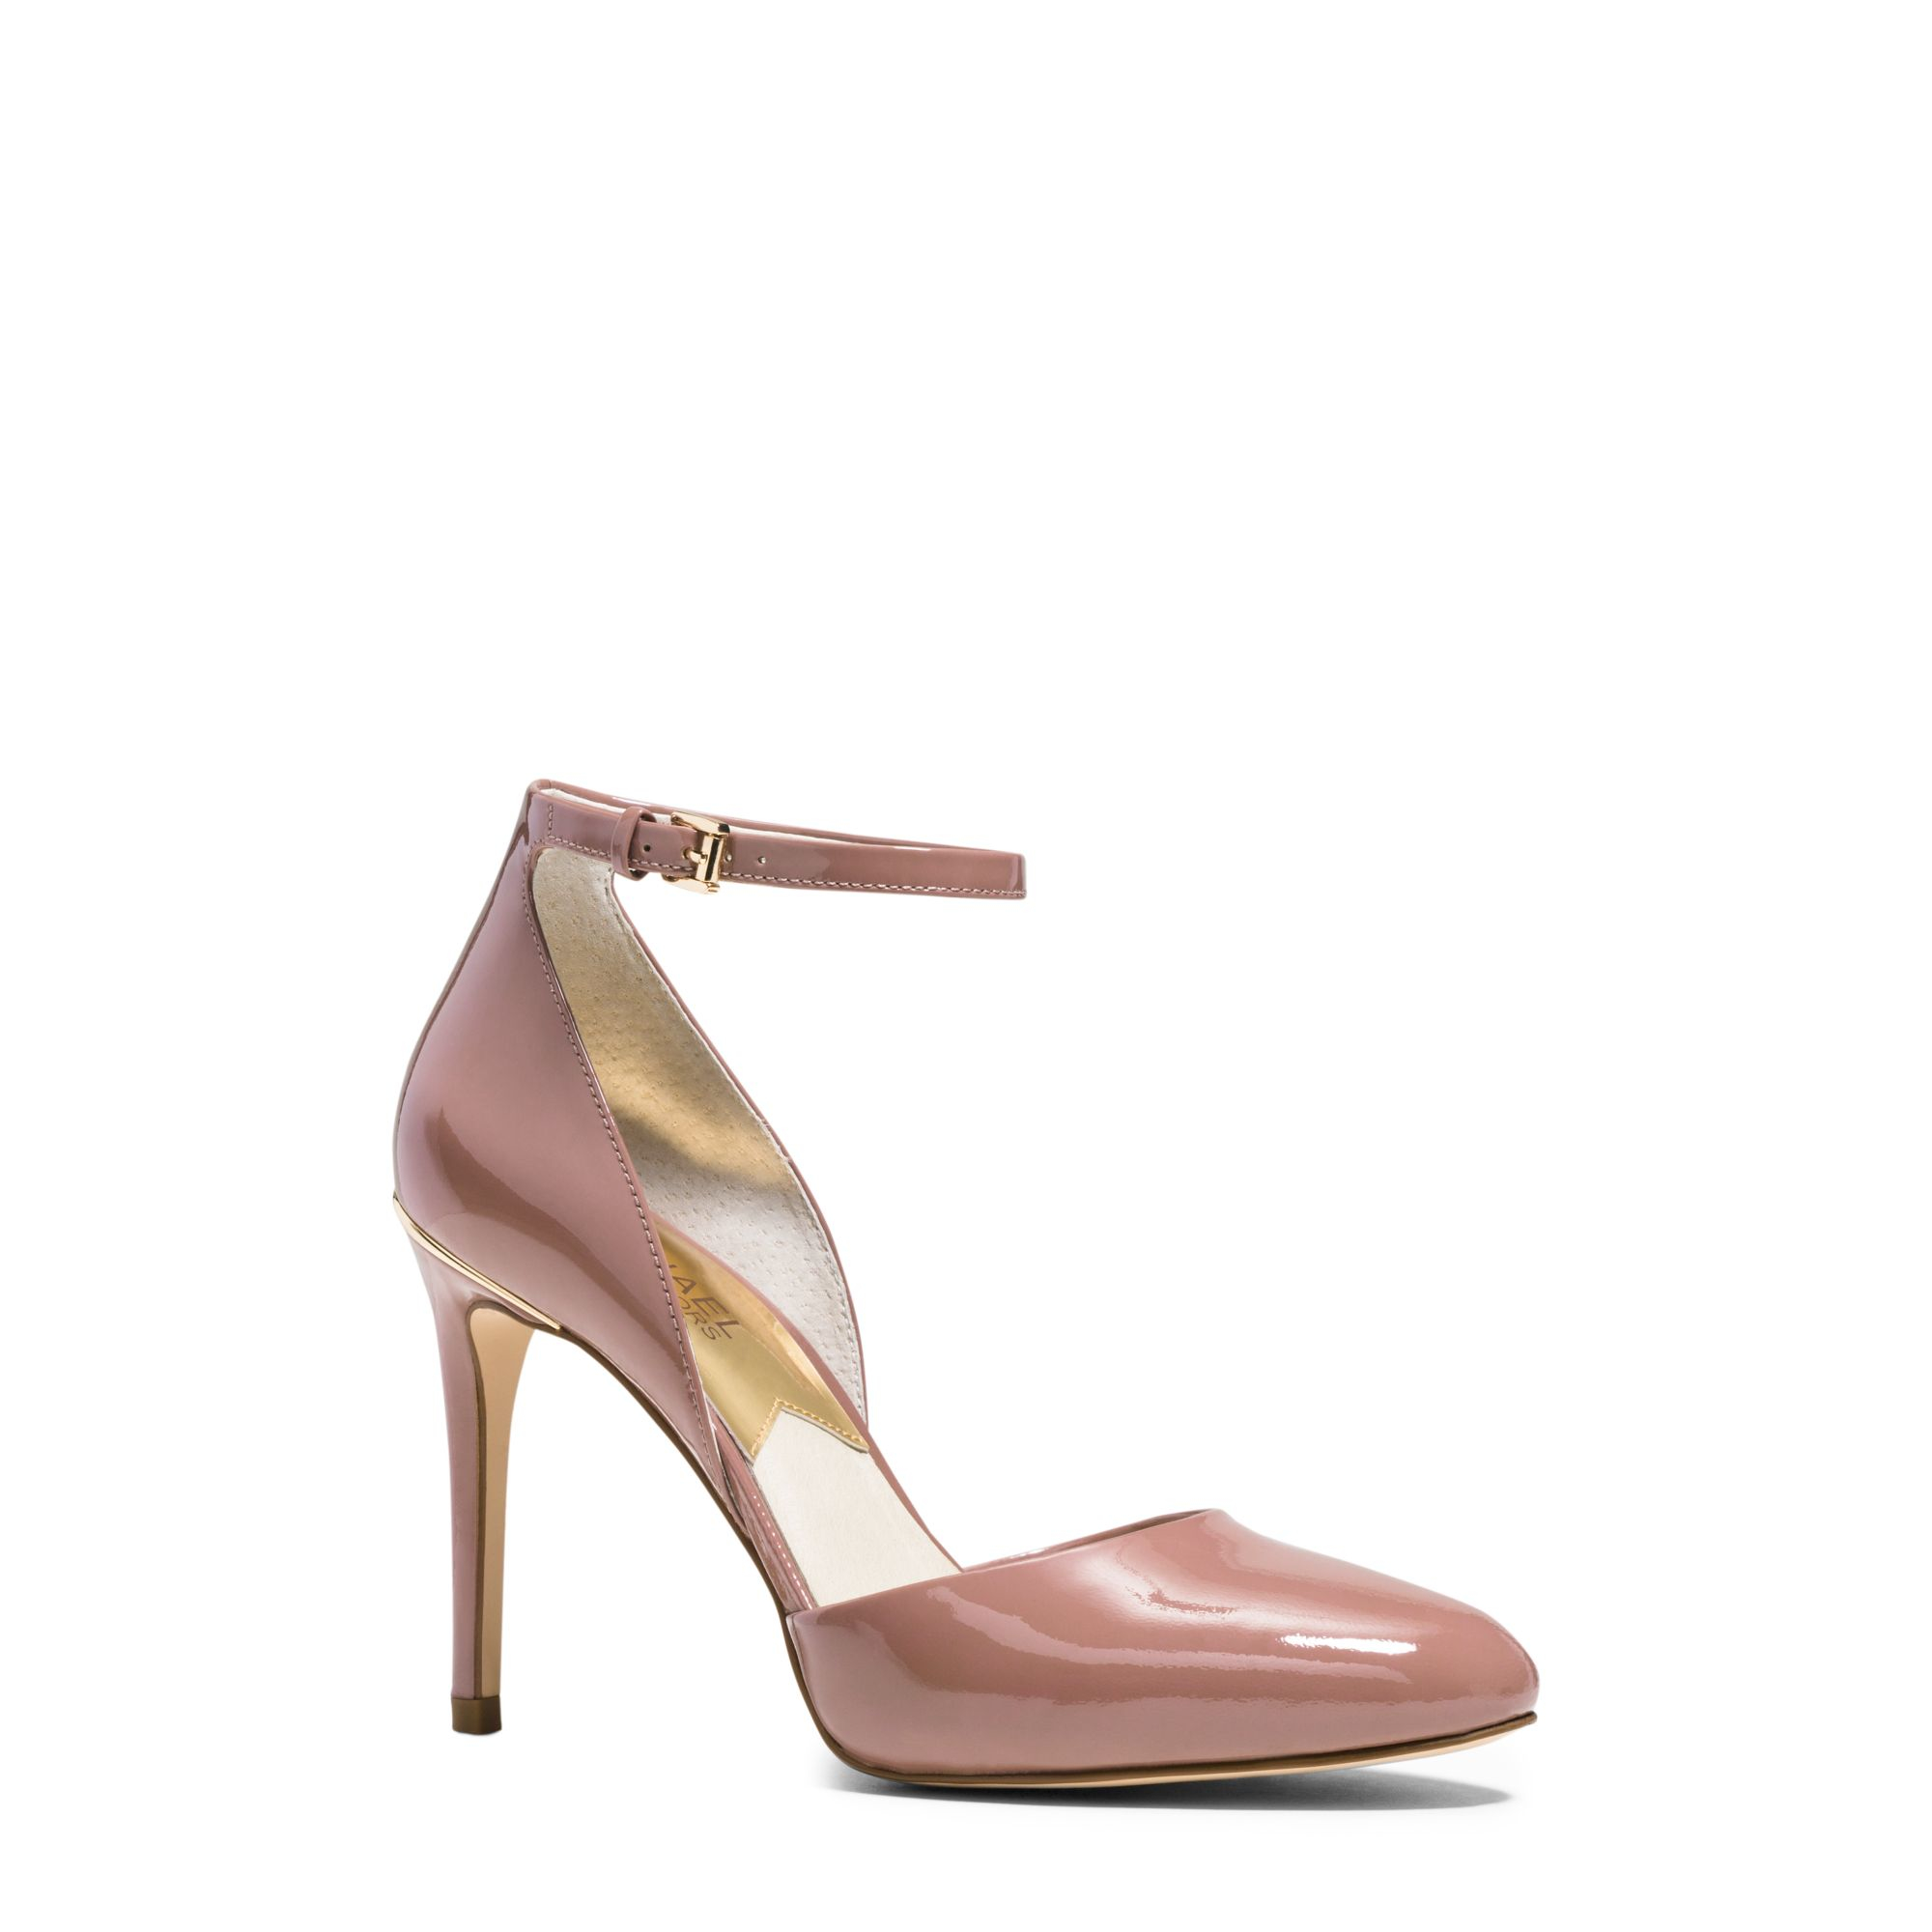 michael kors georgia patent leather pump in pink dusty. Black Bedroom Furniture Sets. Home Design Ideas